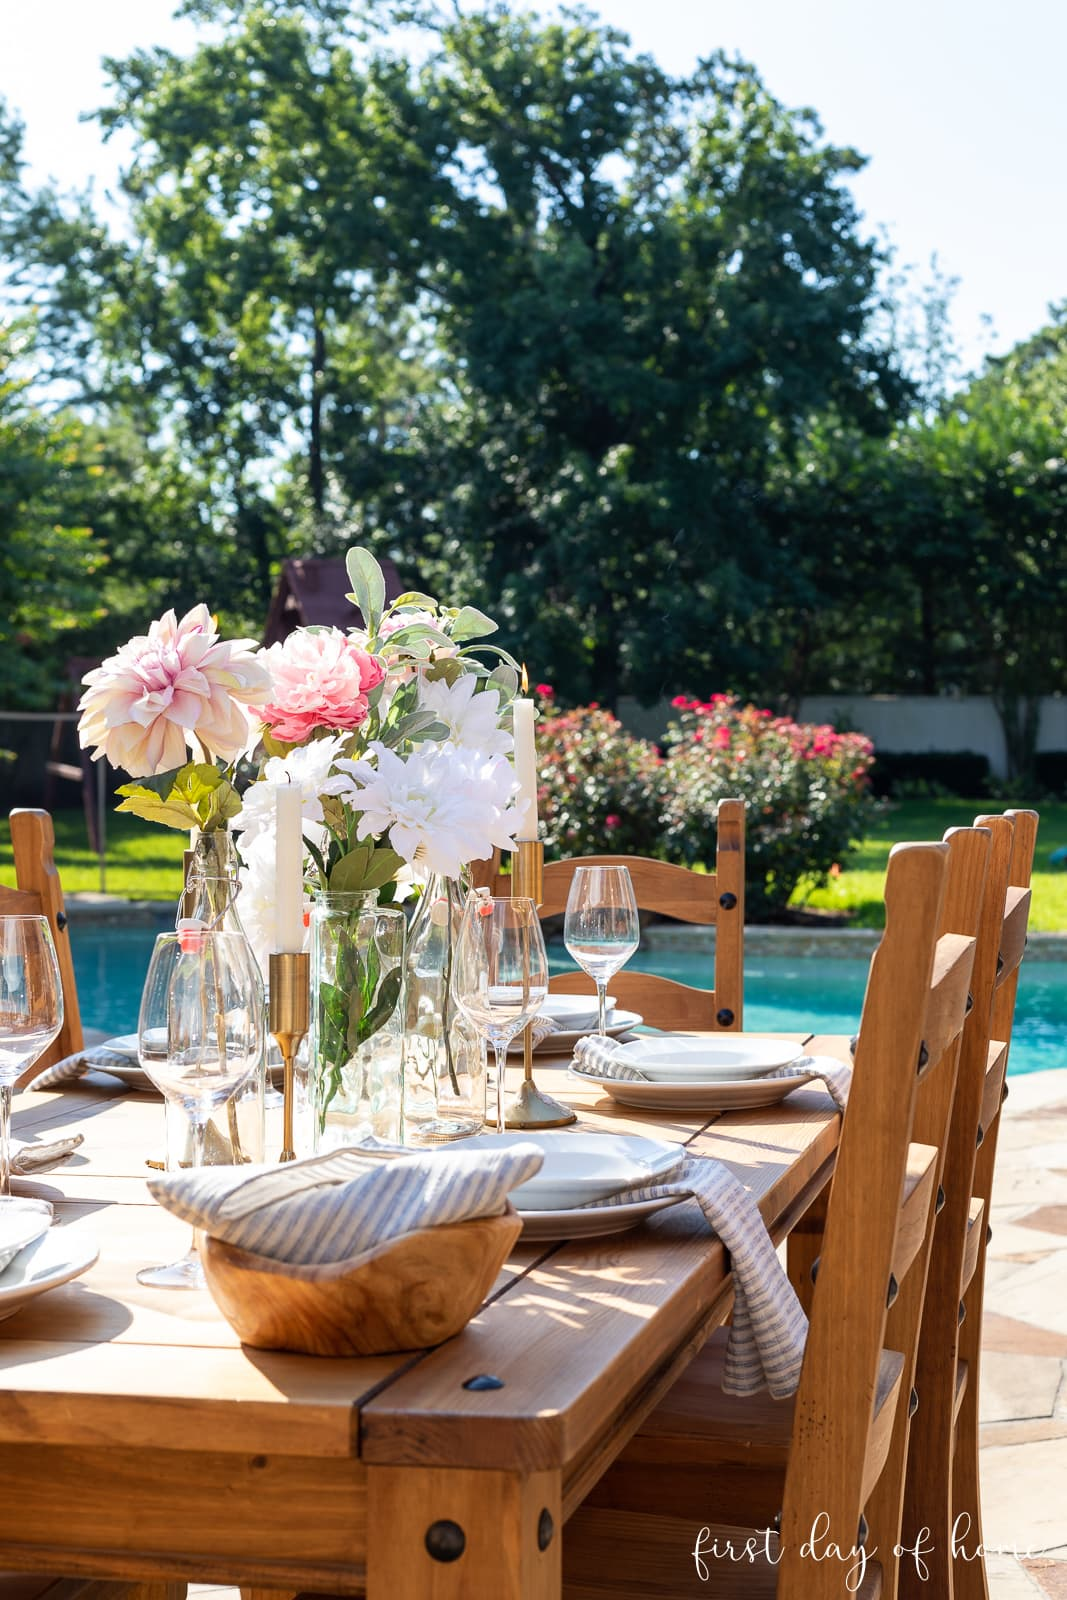 Outdoor dining table with floral centerpiece using glass bottles and taper candles